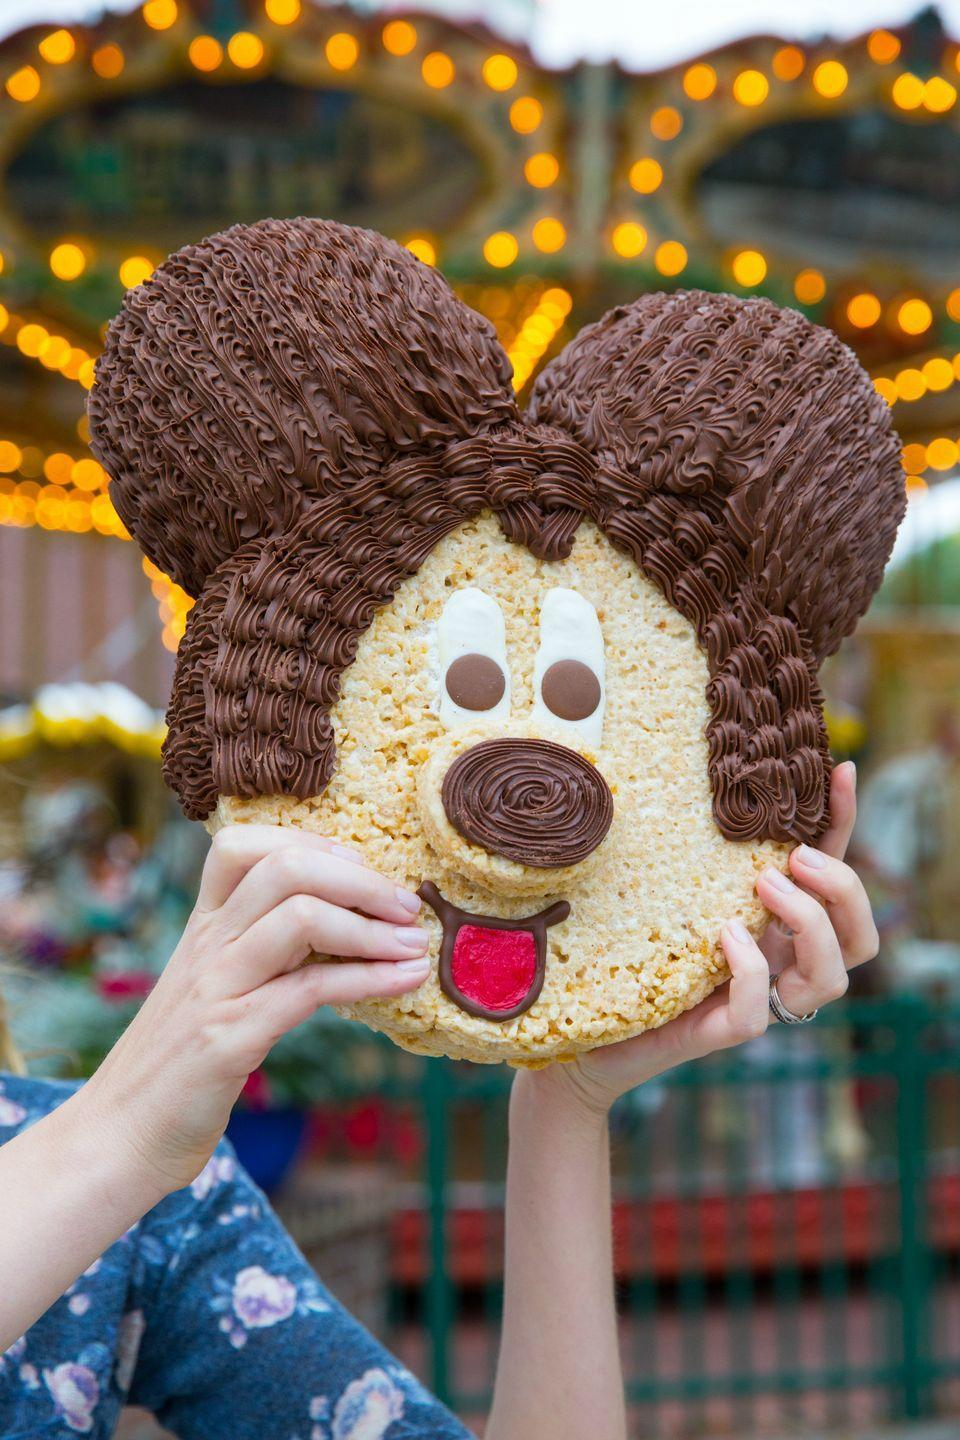 <p>These adorable Rice Krispie treats were popular early on and still hold a certain charm for most Disney lovers. They're often dipped in chocolate and other fun ingredients, so it's no surprise they became an iconic food in the '80s. </p>